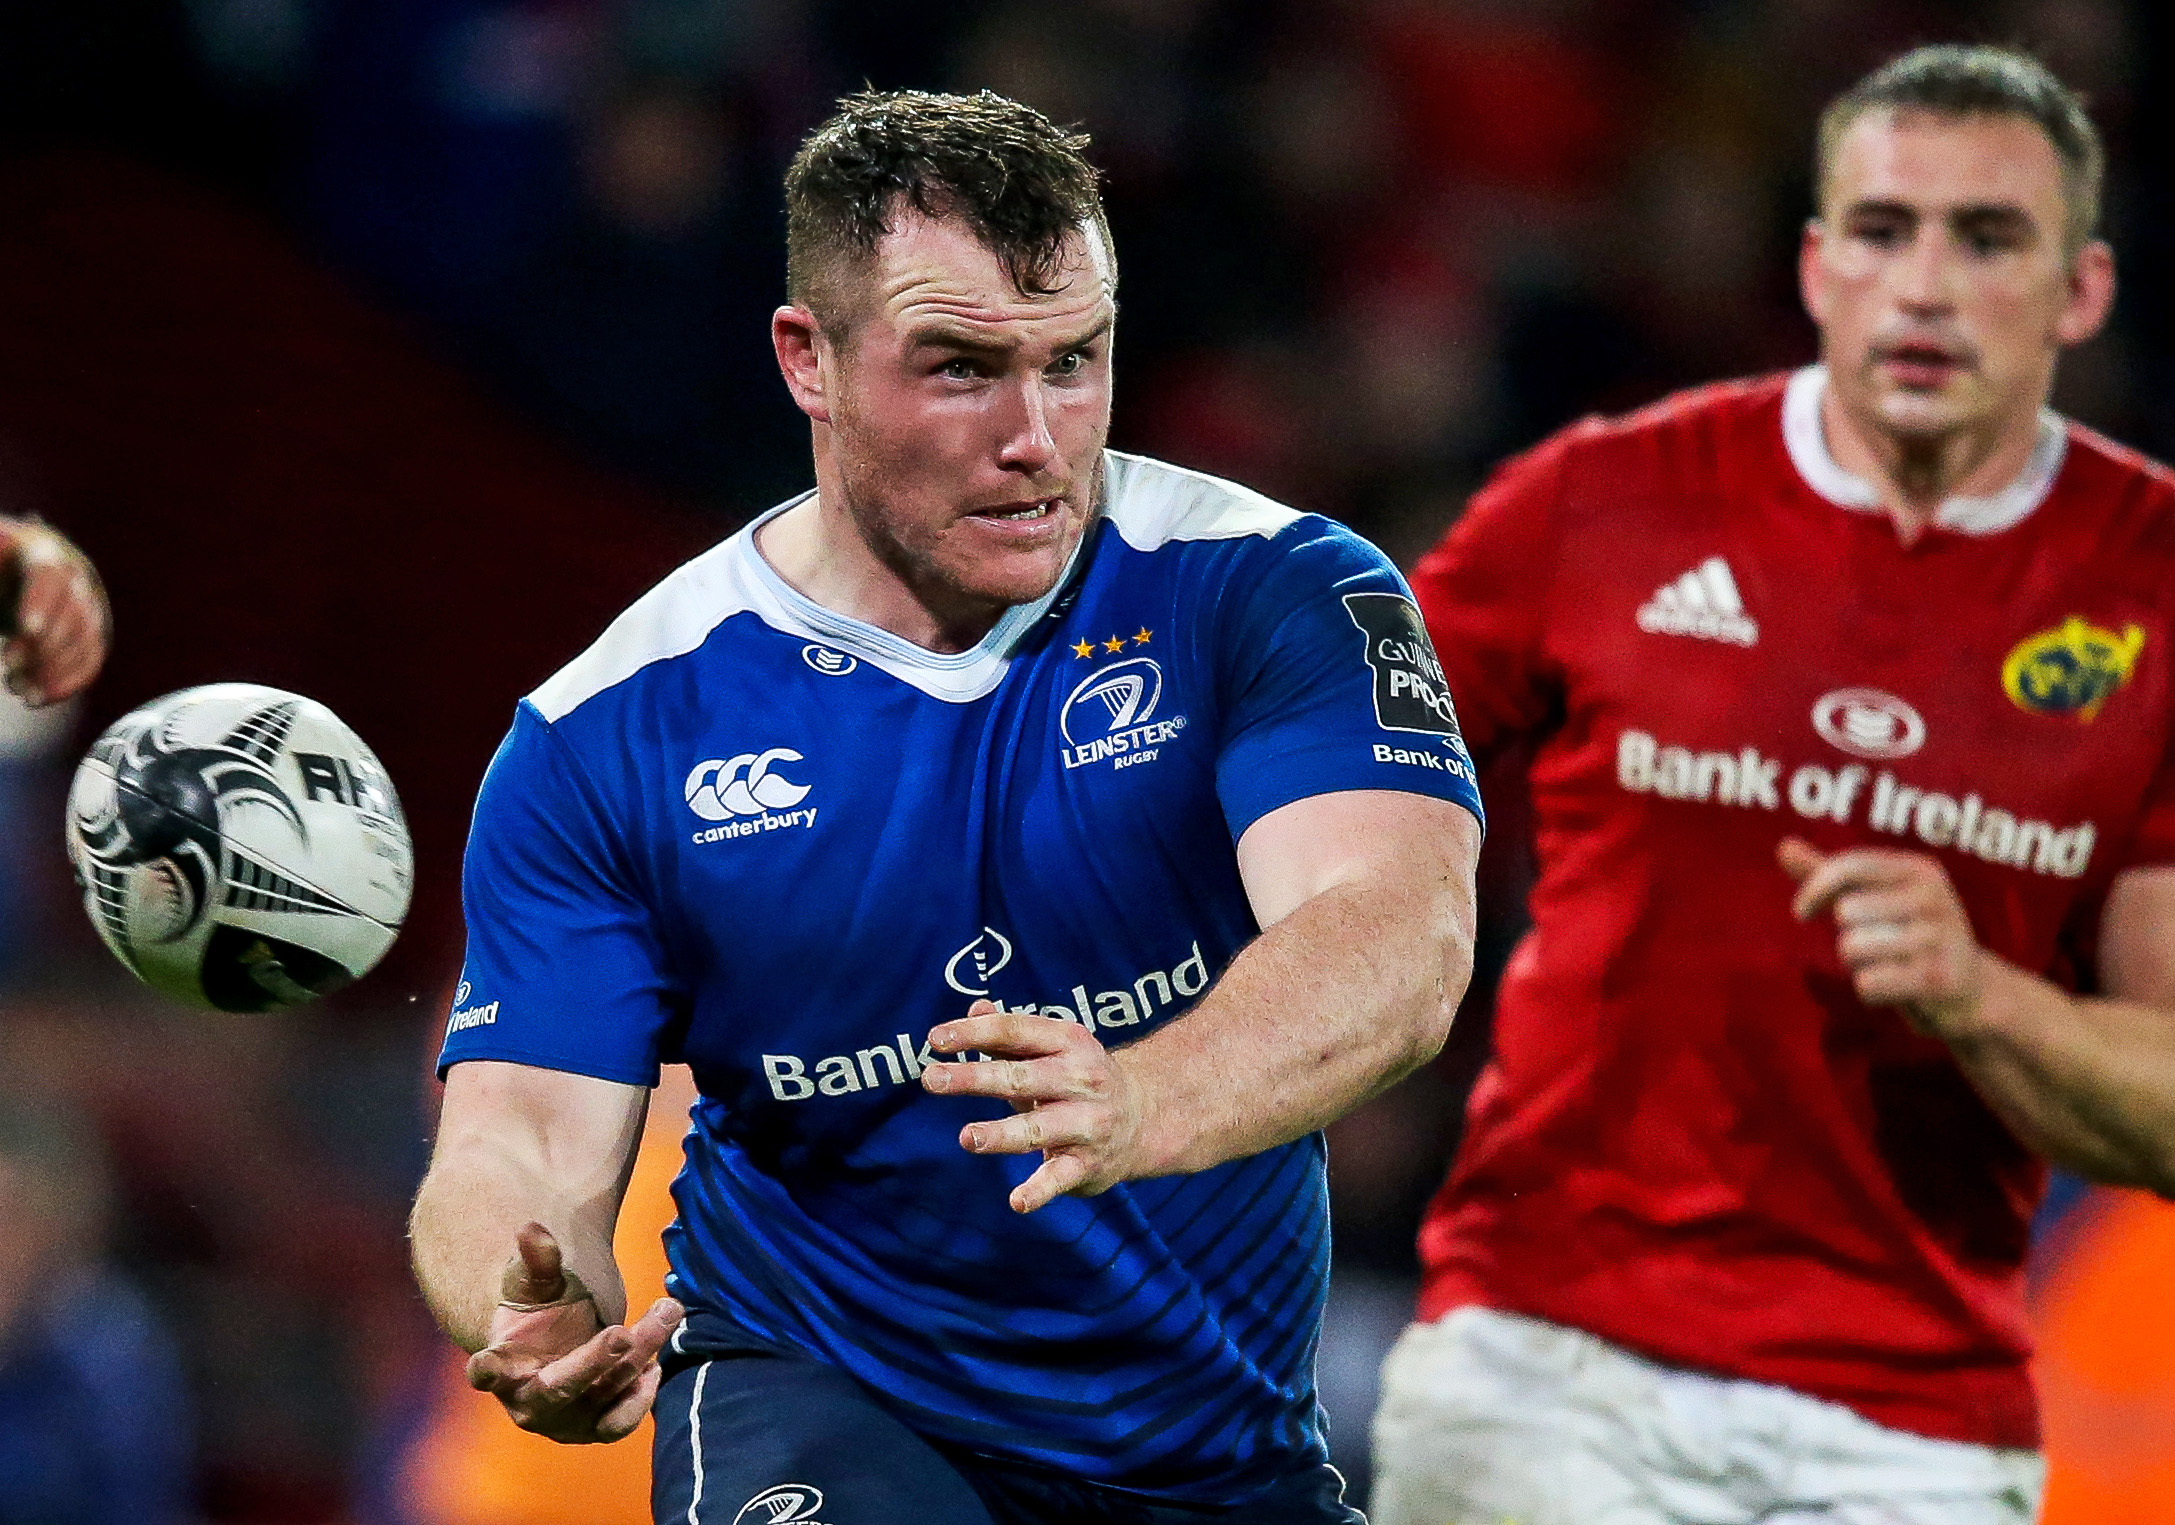 Munster and Leinster plotting a path to PRO12 finals